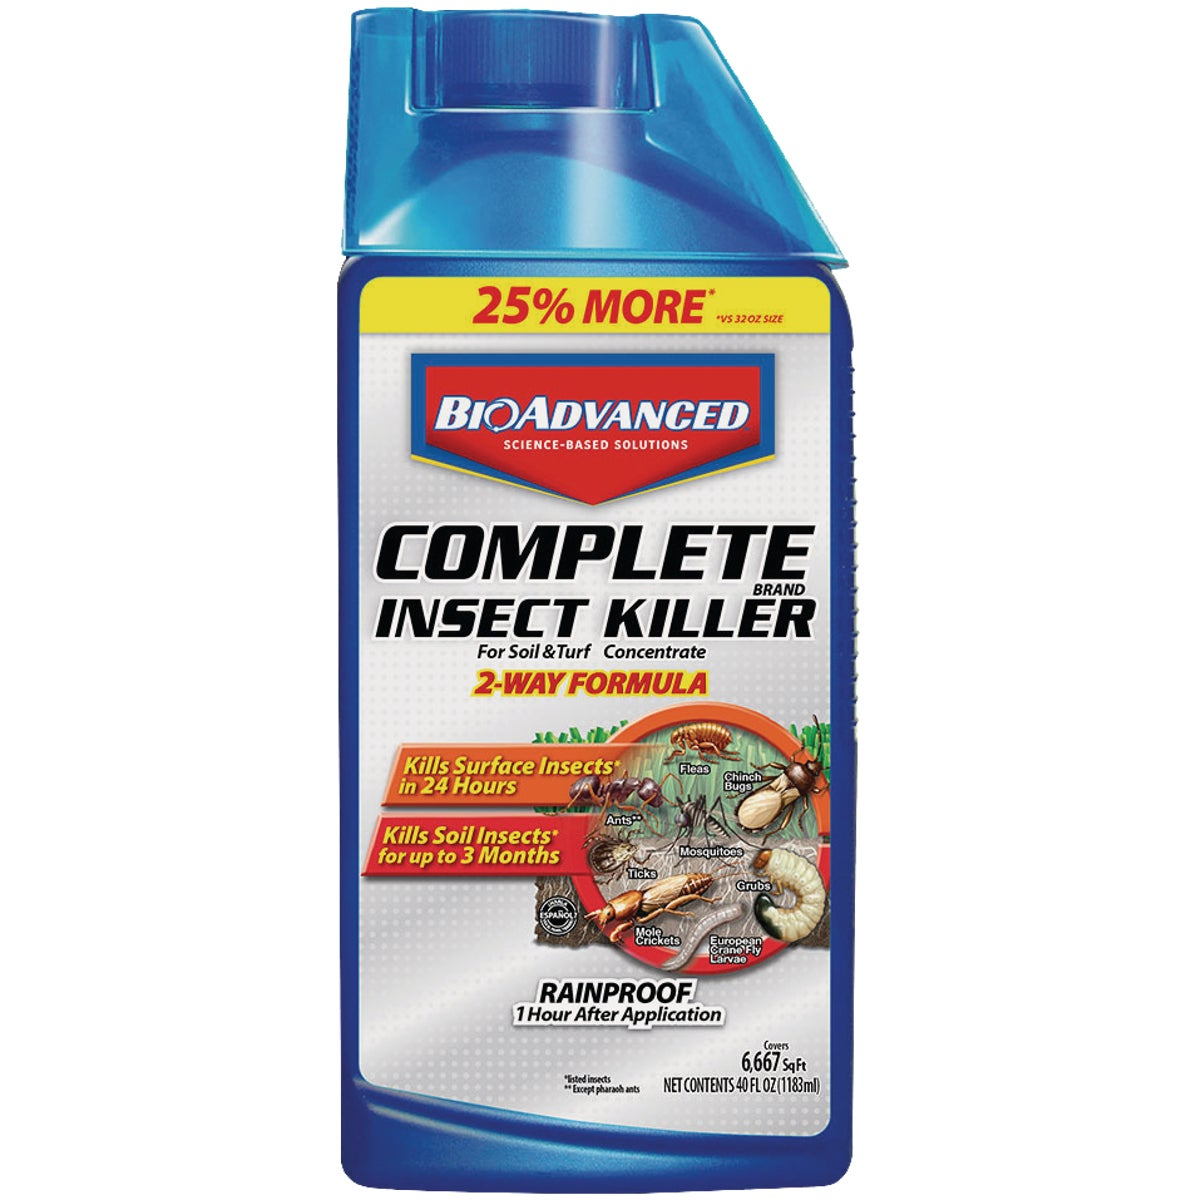 OUTDOOR INSECT KILLER - 700270B by Bayer Advanced Llc